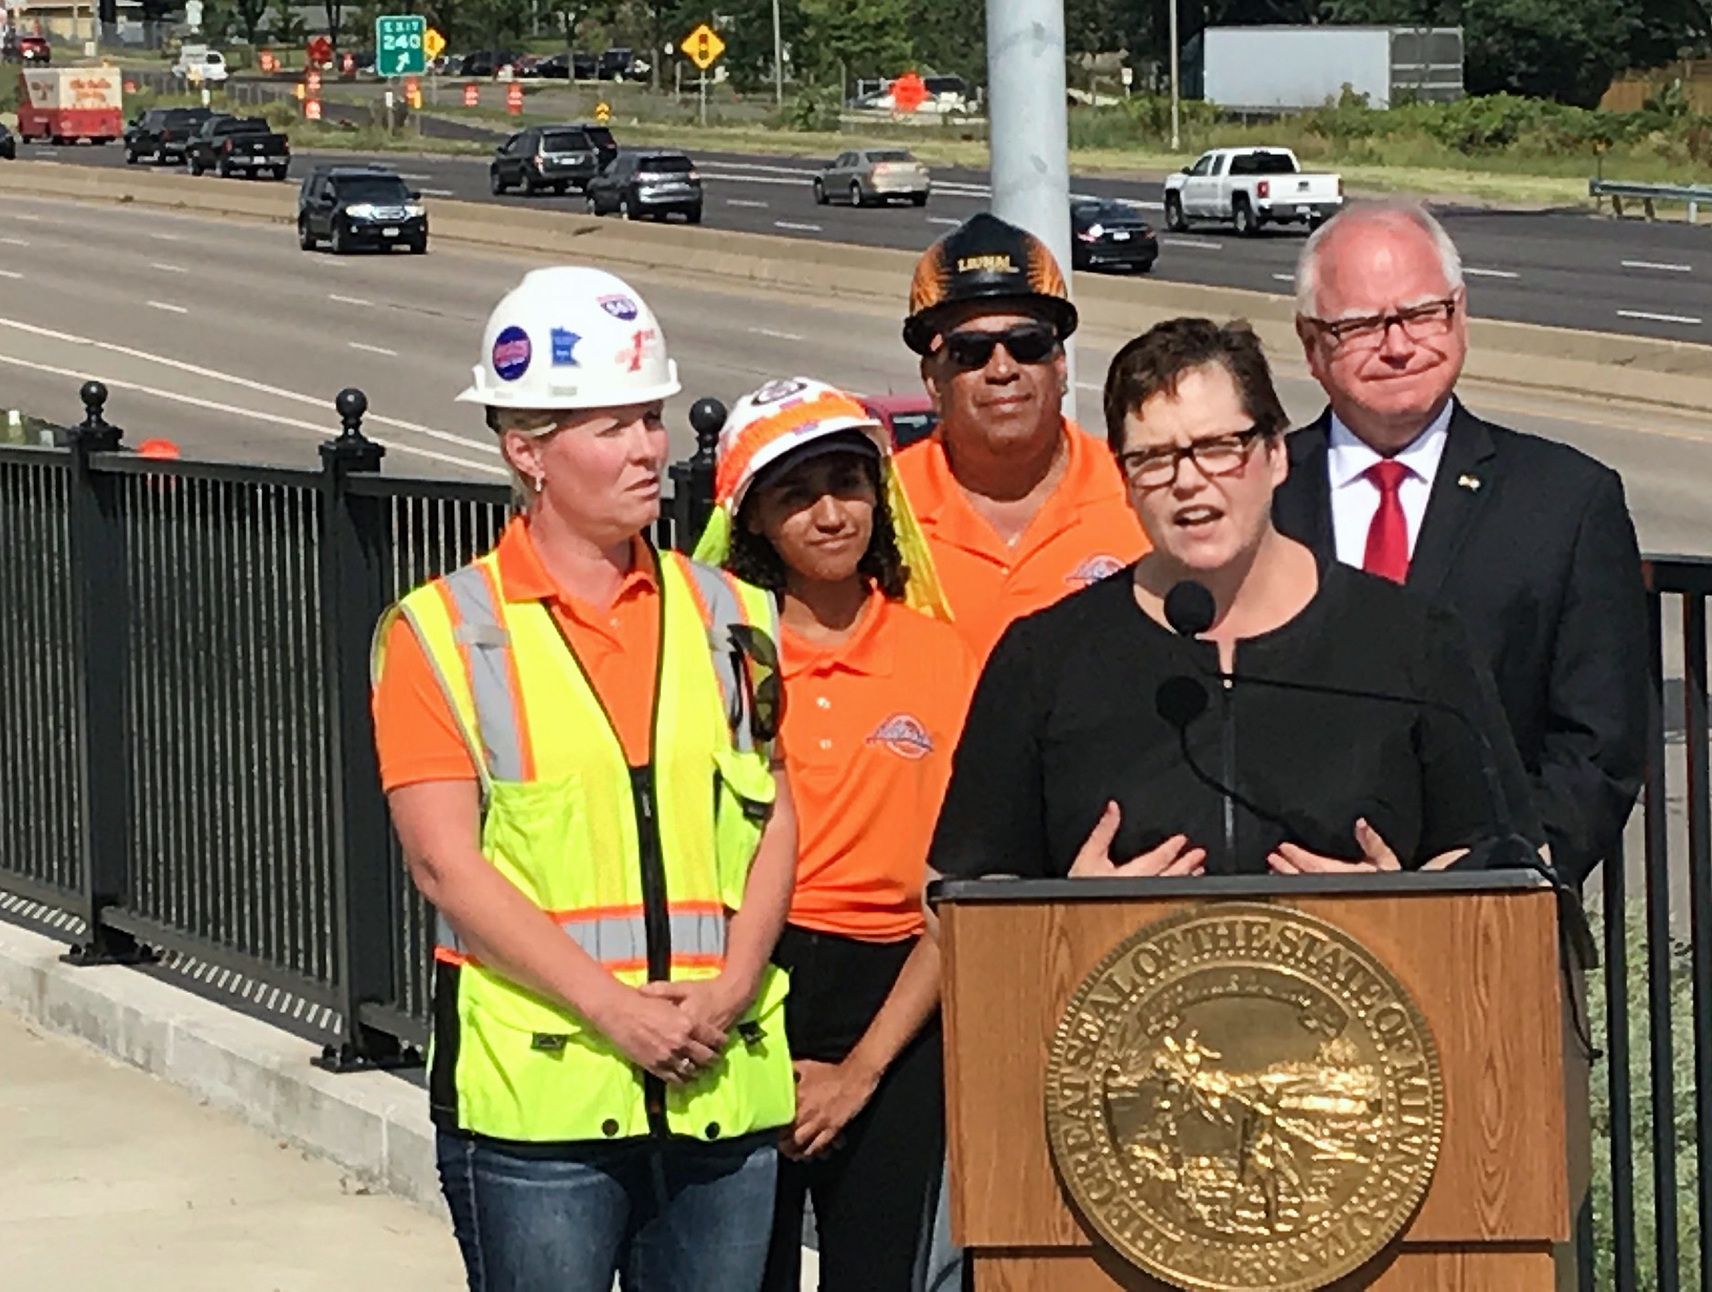 Commissioner maragaret anne kelliher speaking at a podium. Gov. tim walz is to her left, three other people are two her right, and a busy section of freeway is behind her.